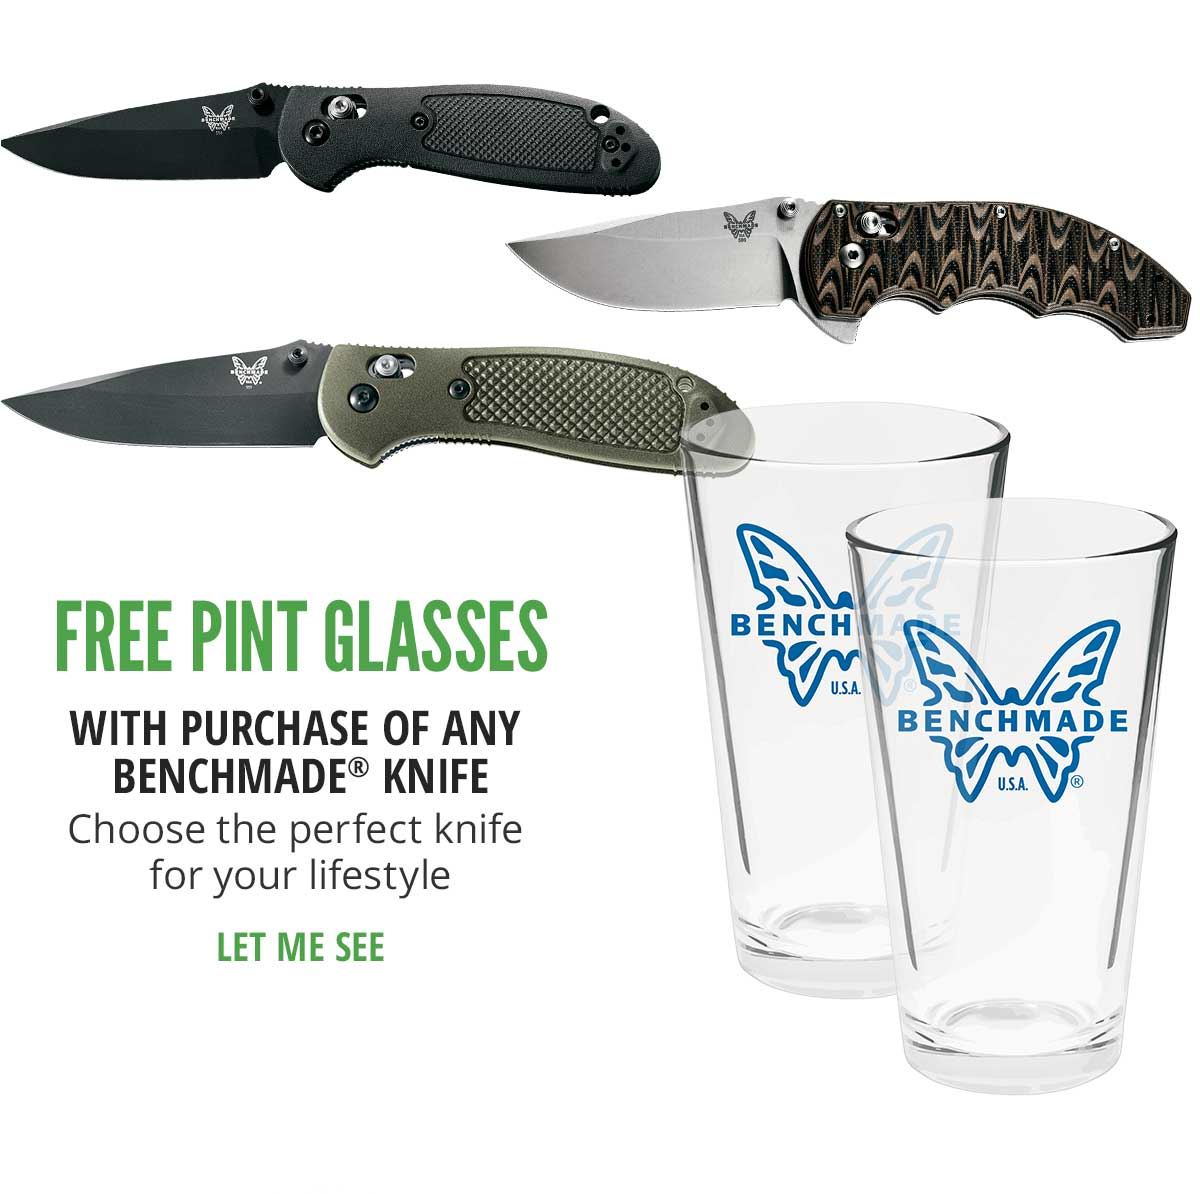 Free Pint Glasses With Purchase Of Any Benchmade Knife